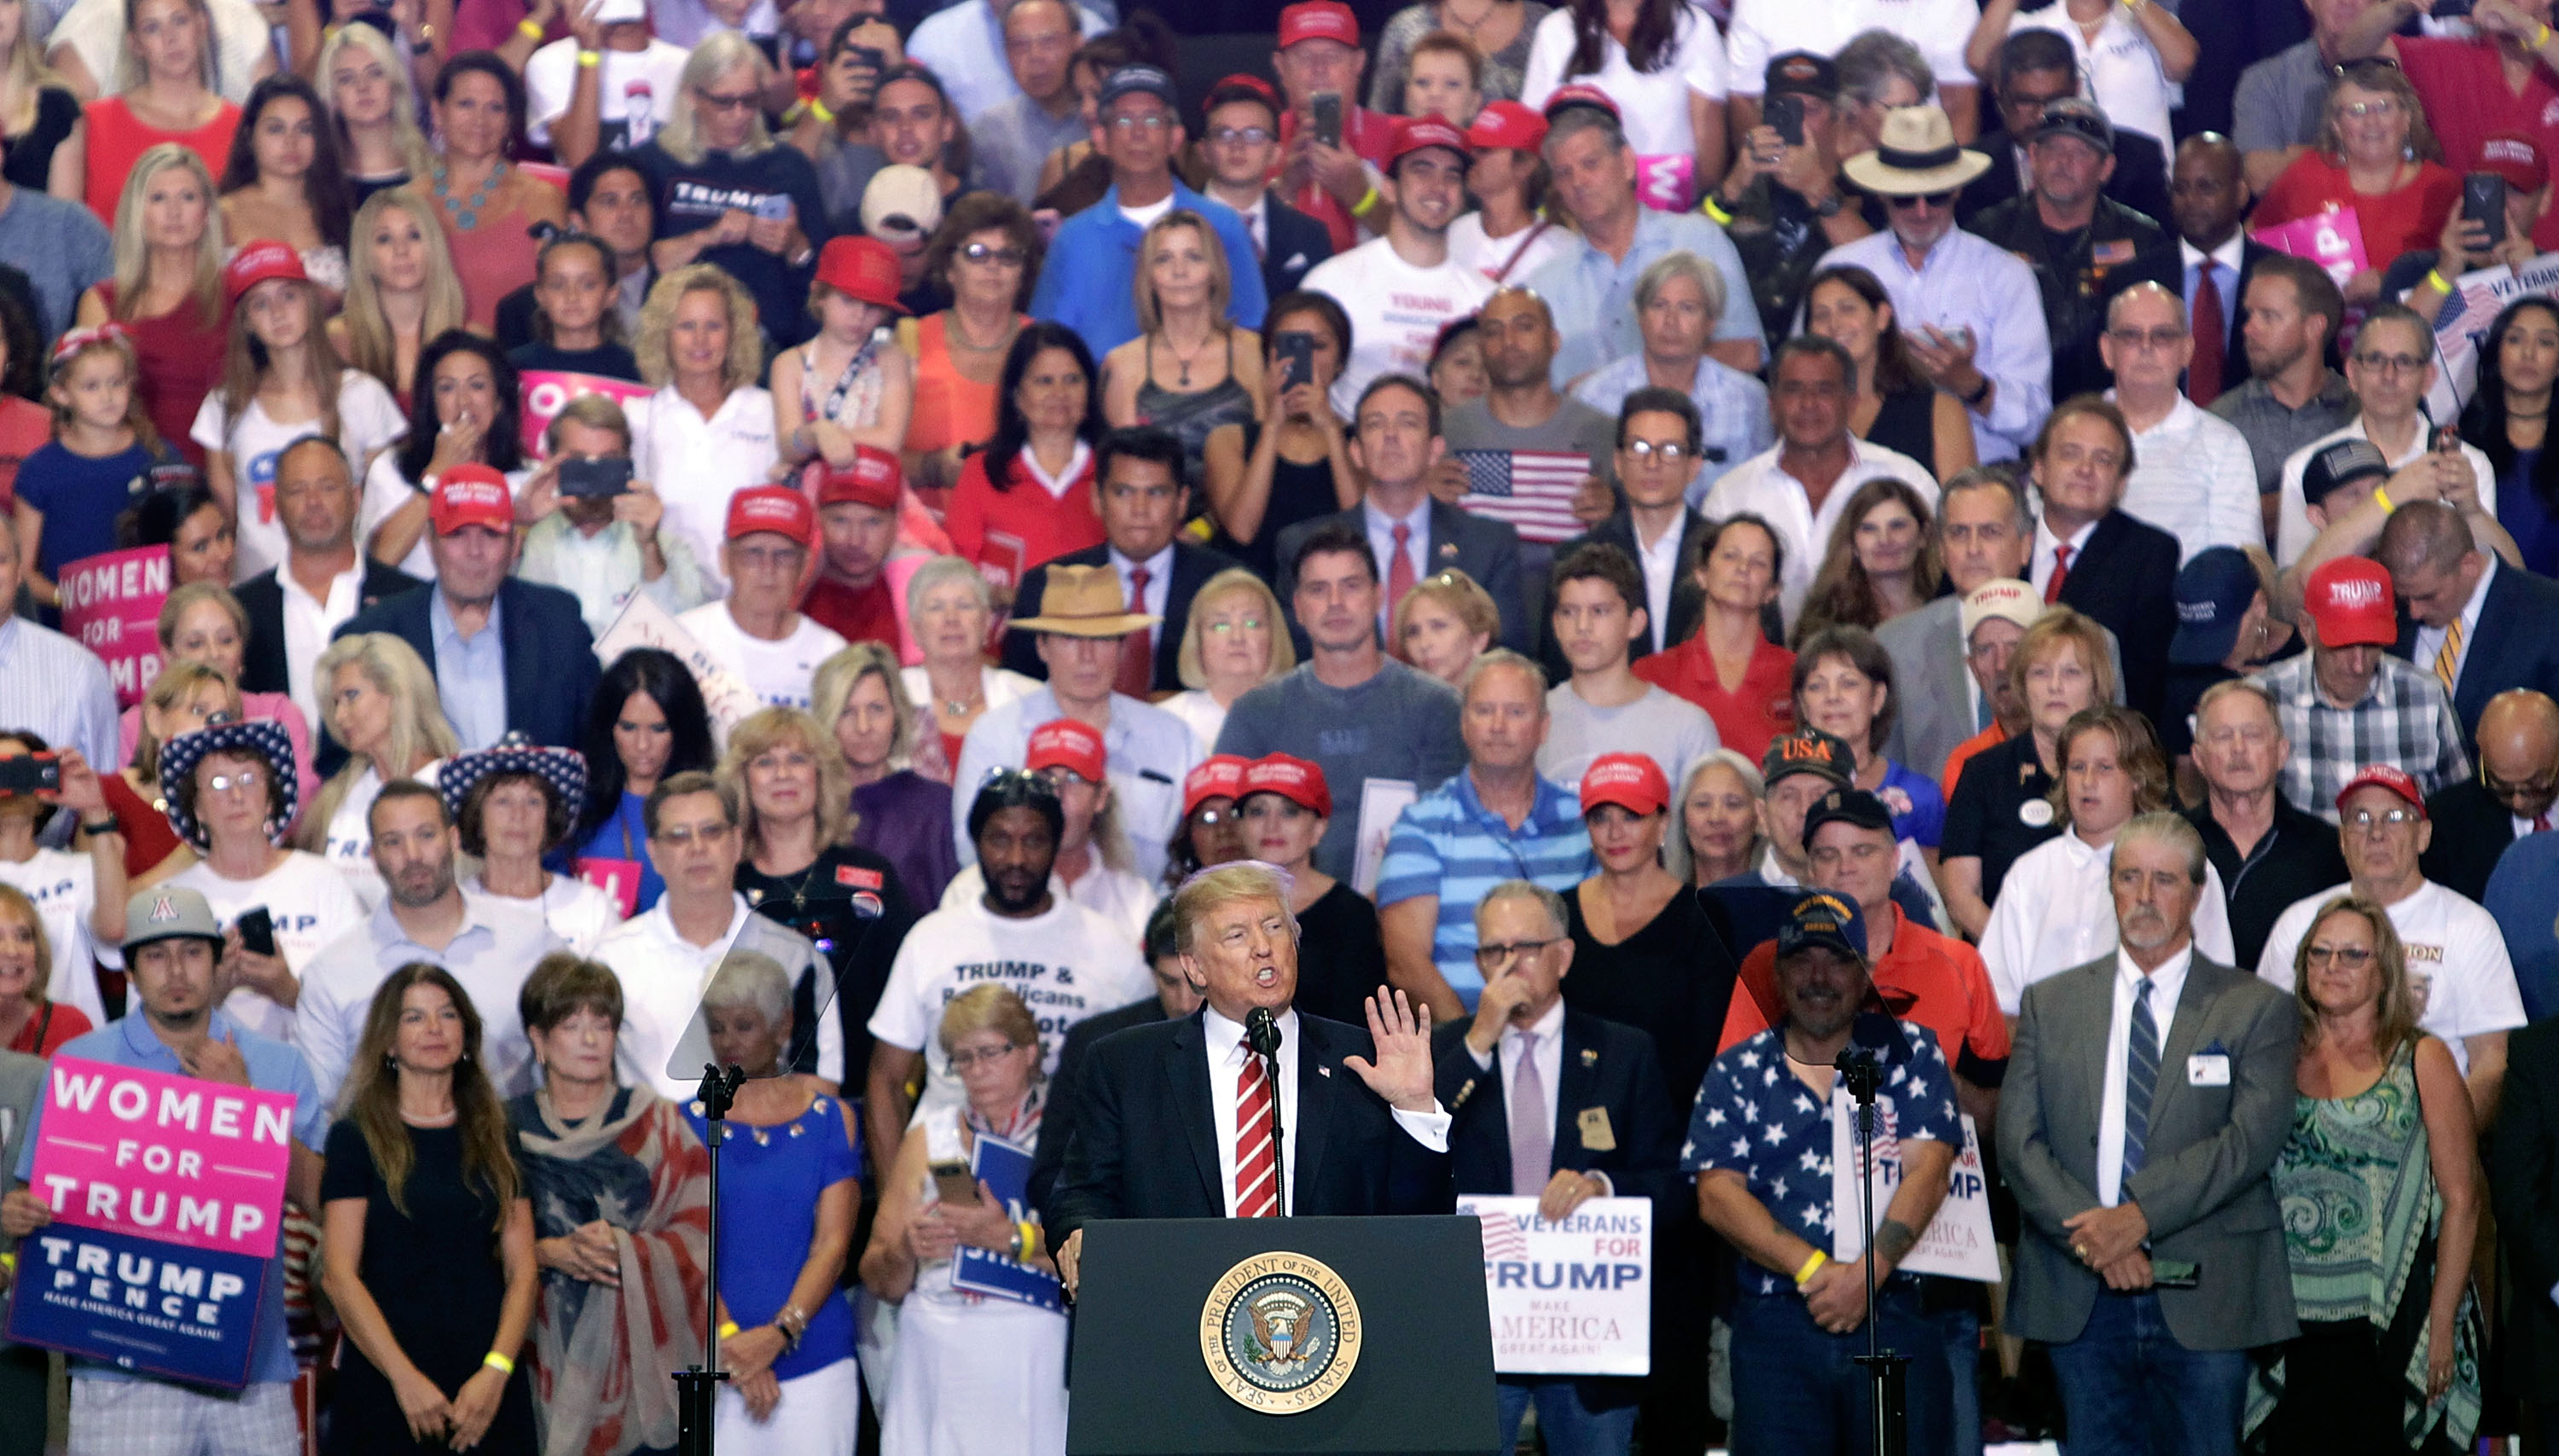 President Donald Trump speaks to a crowd of supporters at the Phoenix Convention Center during a rally on August 22, 2017 in Phoenix, Arizona.